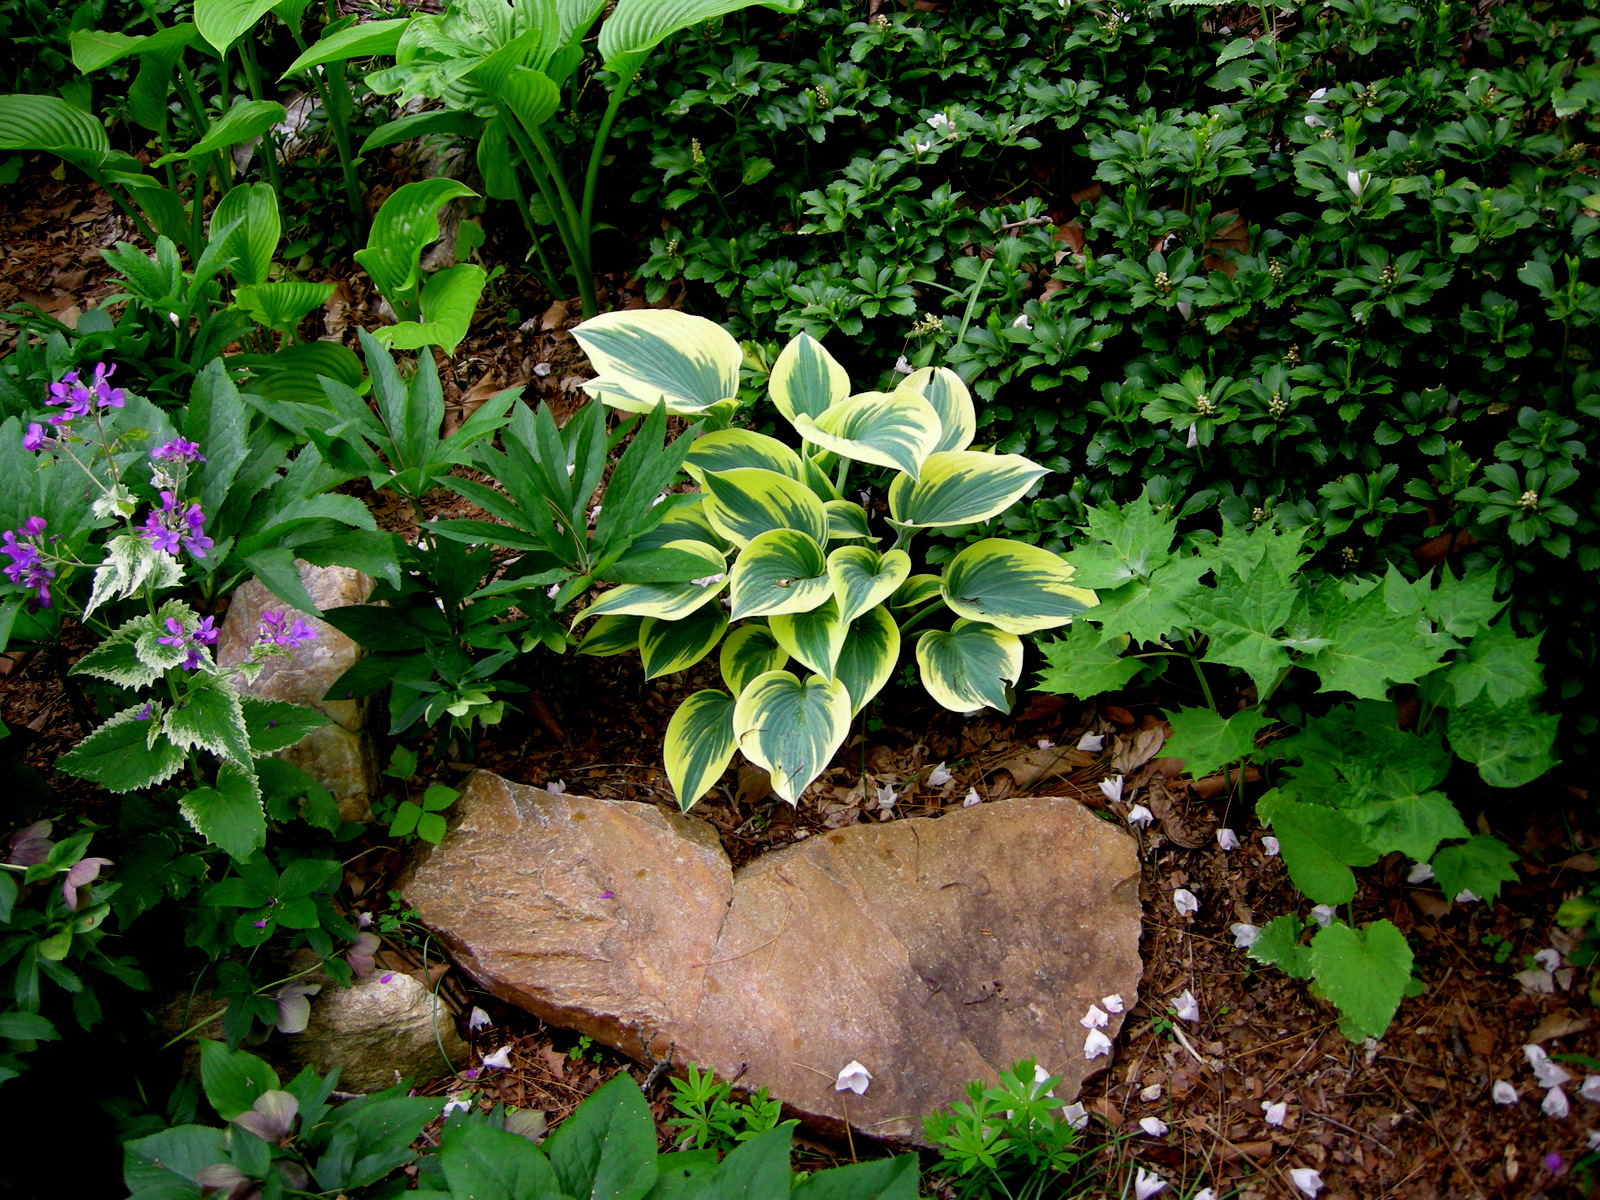 Miniature small hostas carolyn 39 s shade gardens for Bricolaje para jardin